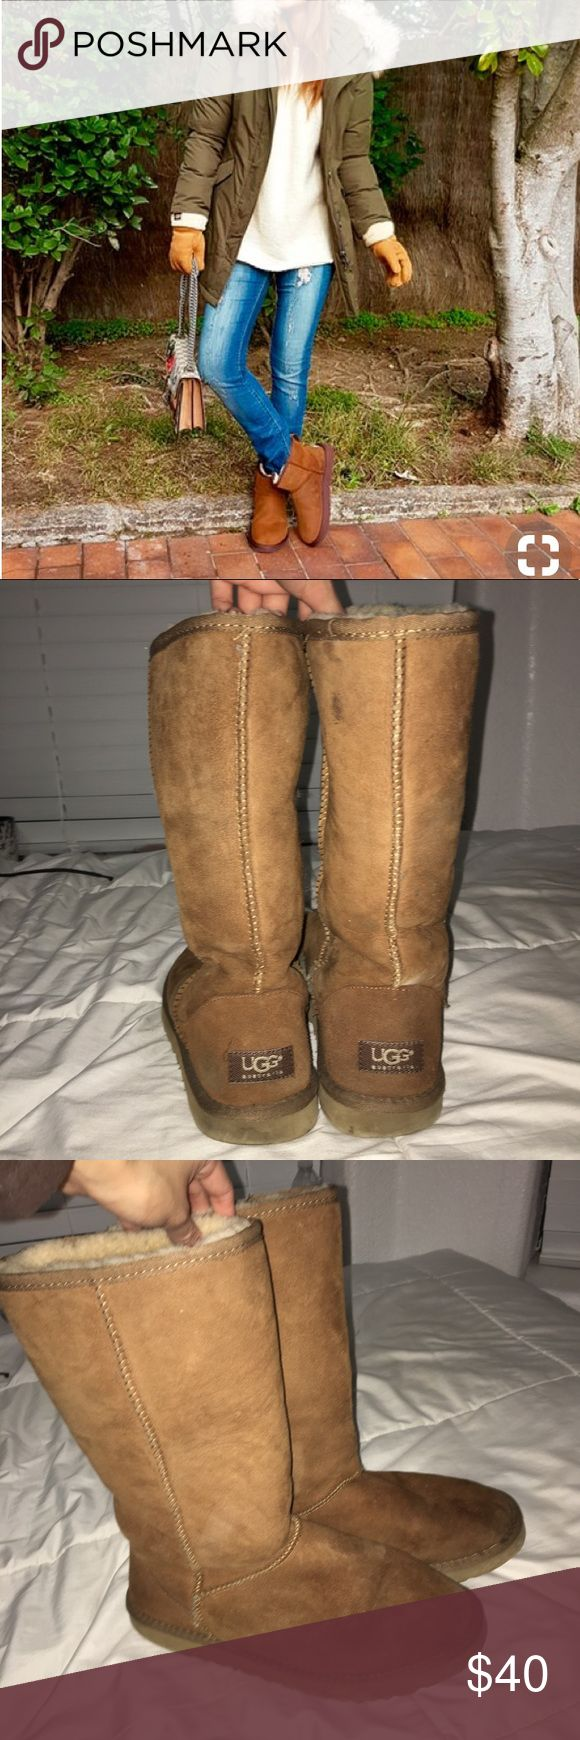 Original ugg boots Really comfy and go with every outfit UGG Shoes Winter & Rain Boots